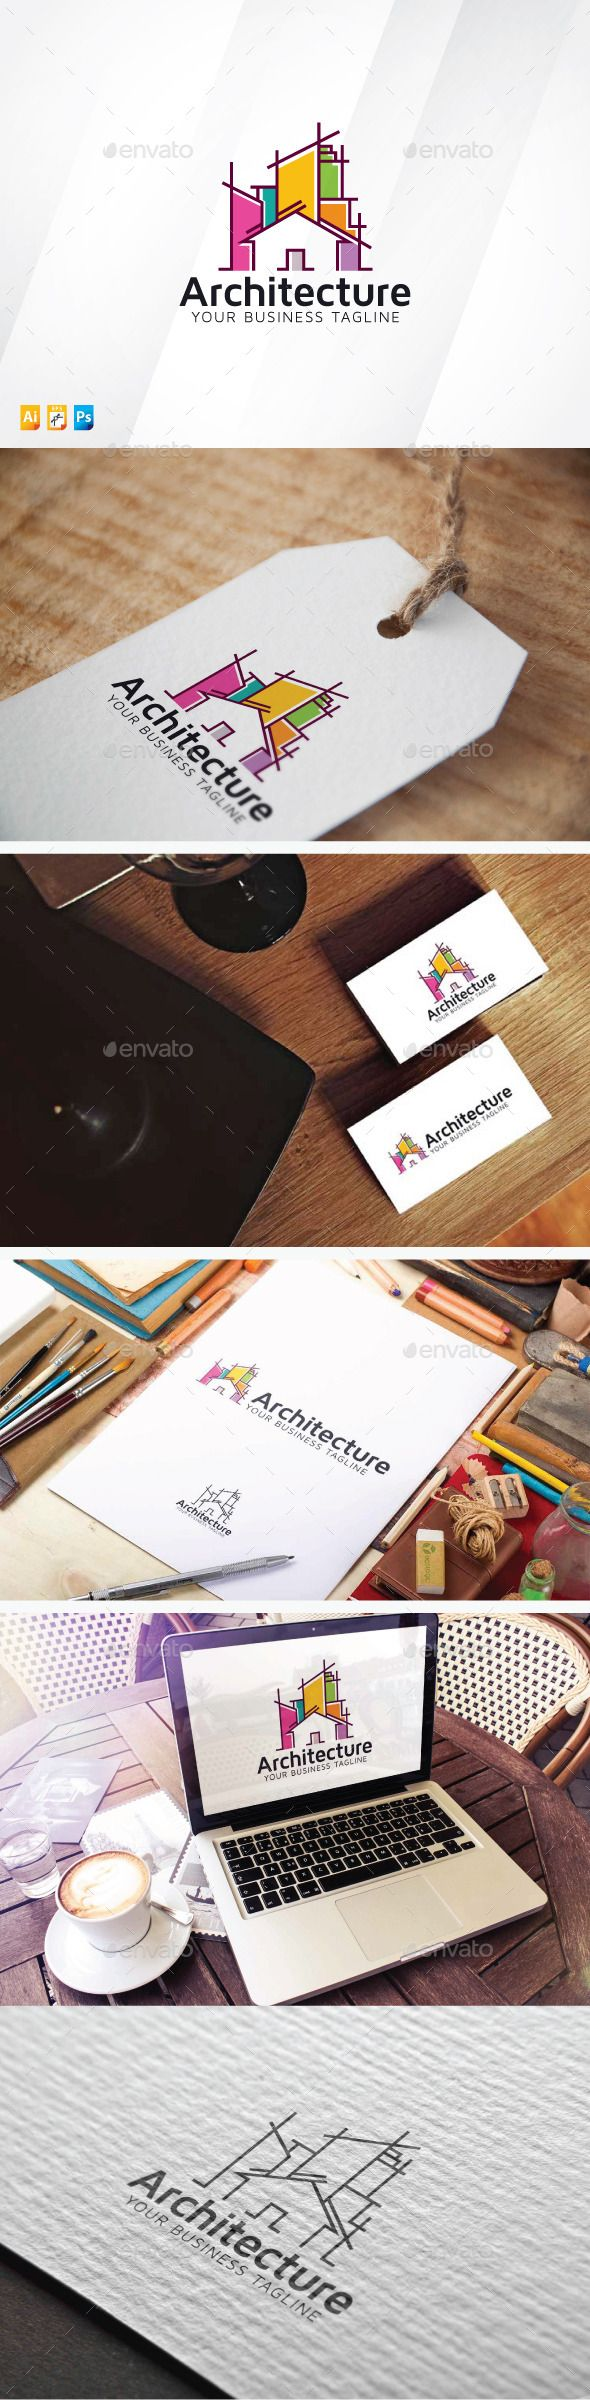 Architecture Logo Template #design #logotype Download: http://graphicriver.net/item/architecture-logo/13199762?ref=ksioks